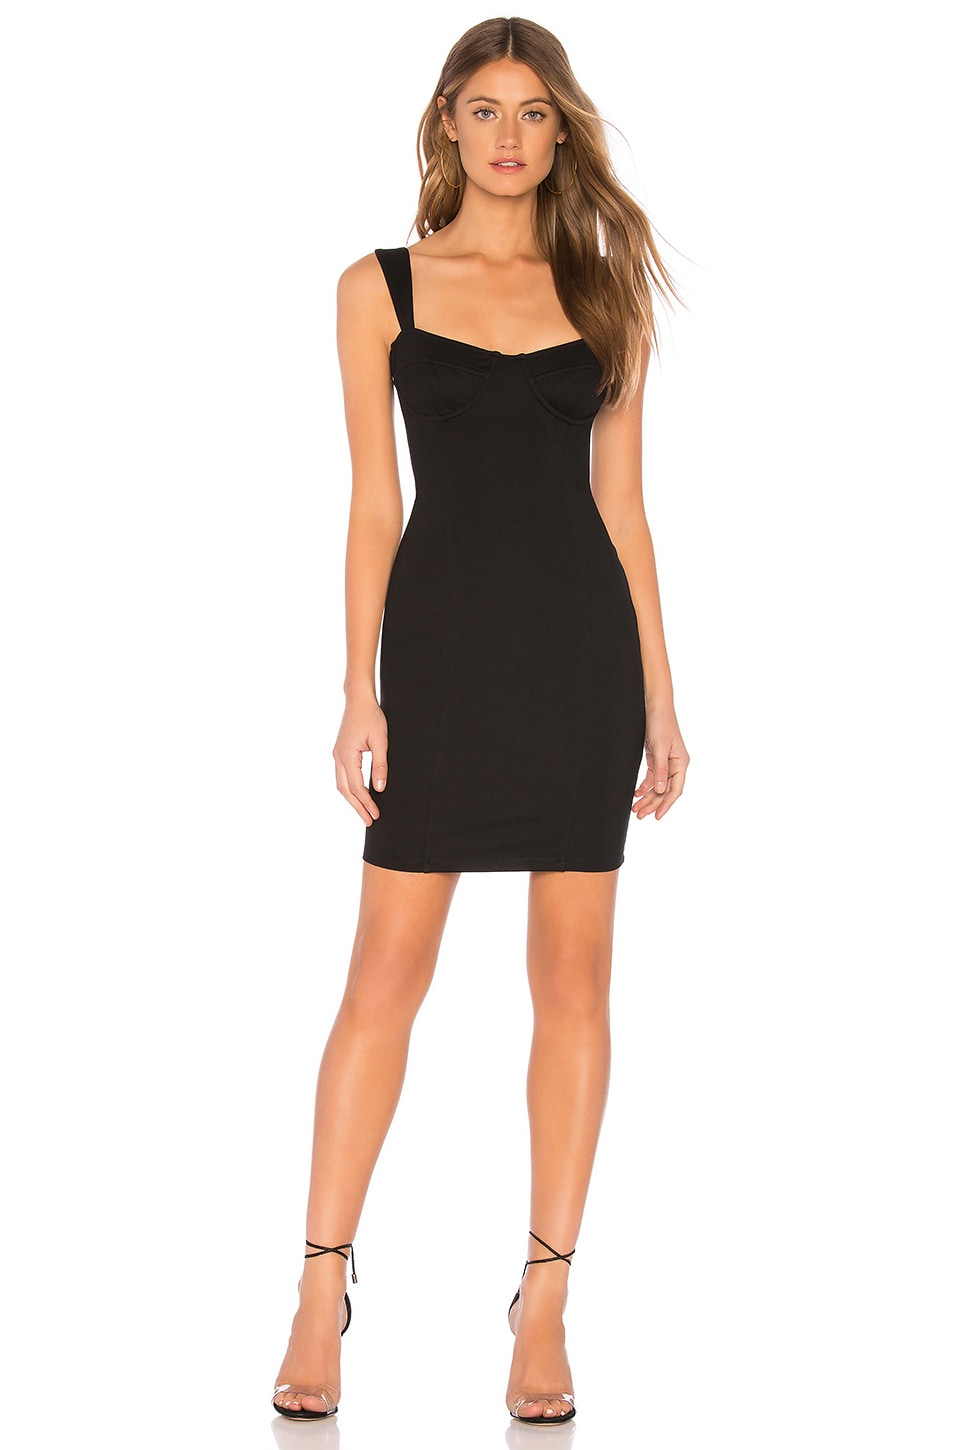 Capulet Bria Bustier Bodycon Dress in Black